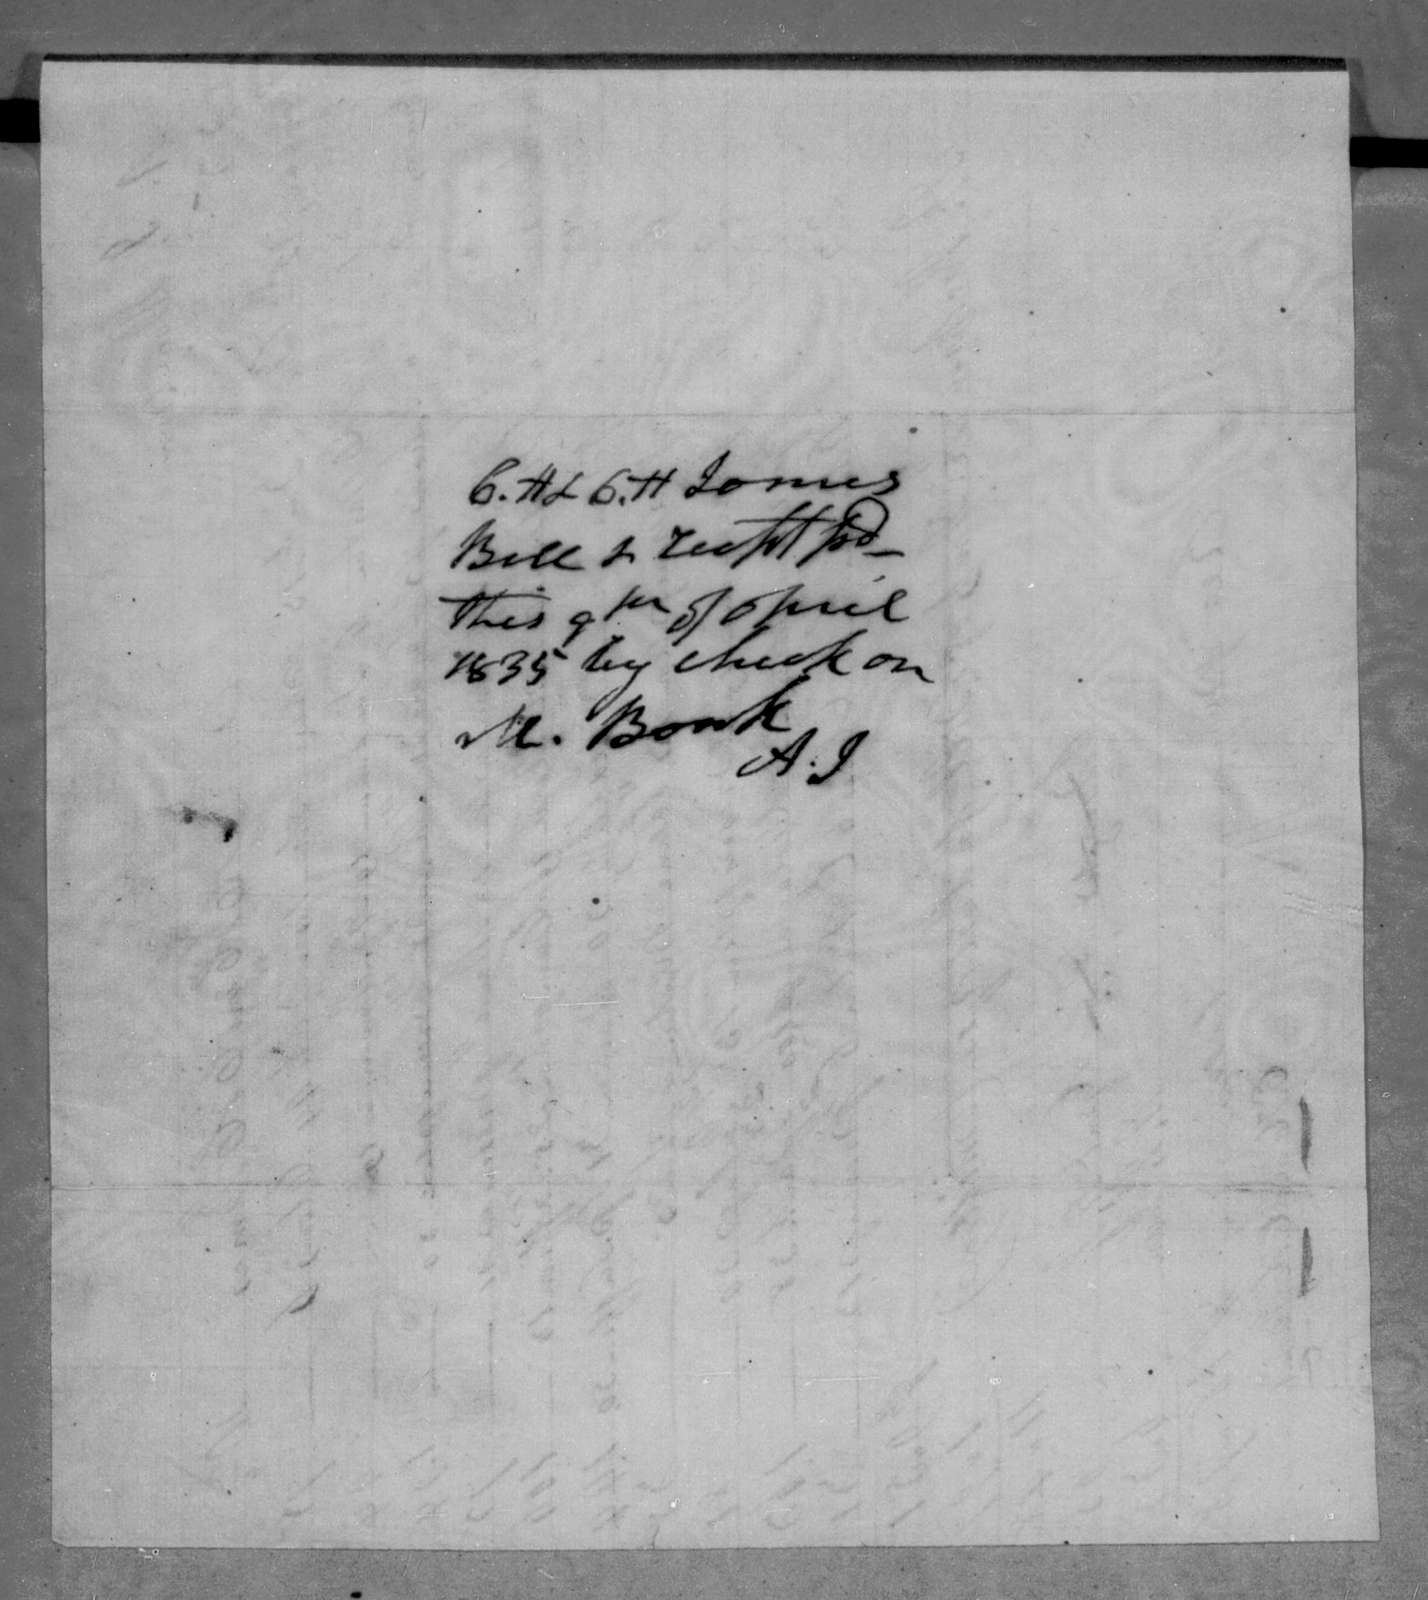 E. H. & C. H. James to Andrew Jackson Donelson, January 12, 1835